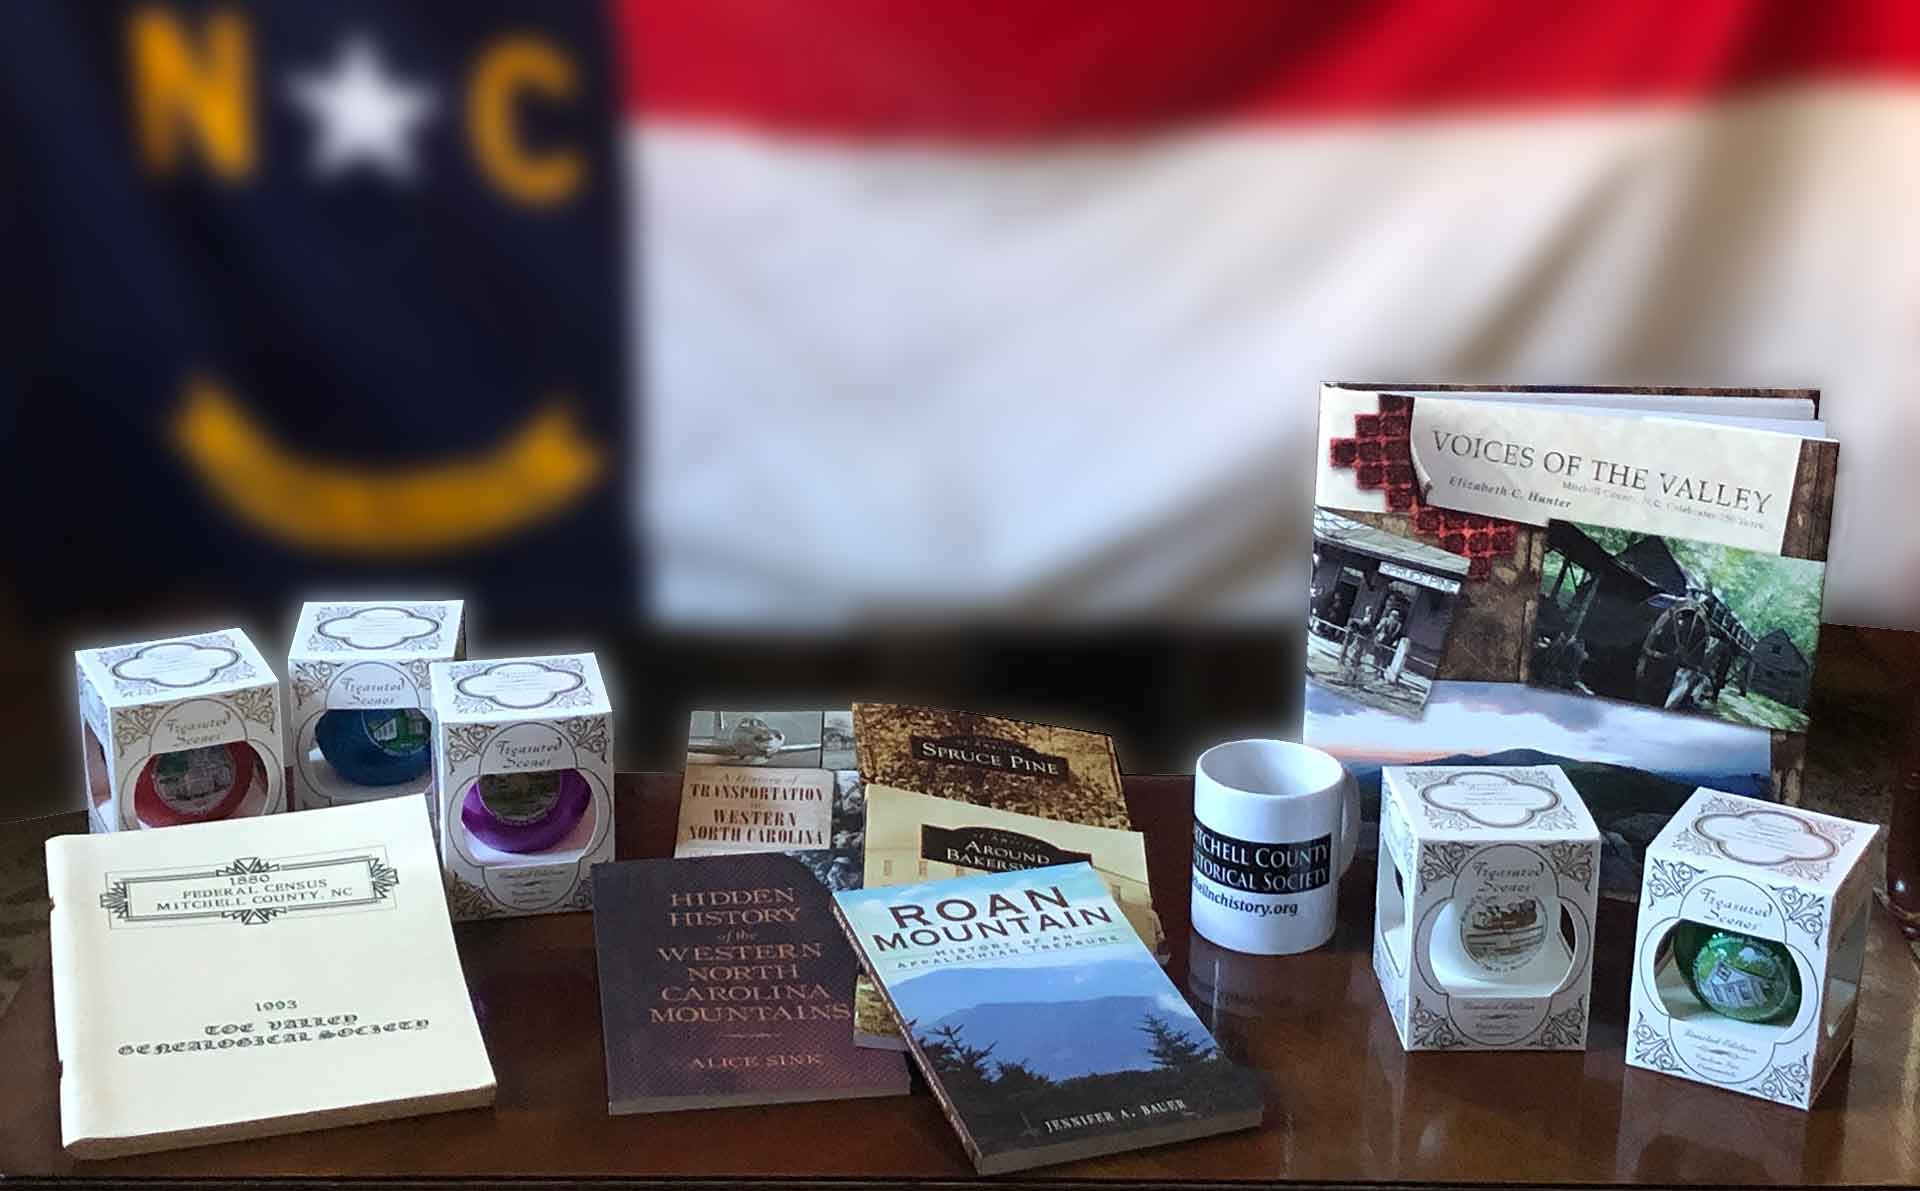 Photo of various books, Christmas ornaments and mugs offered for sale by the Mitchell County Historical Society